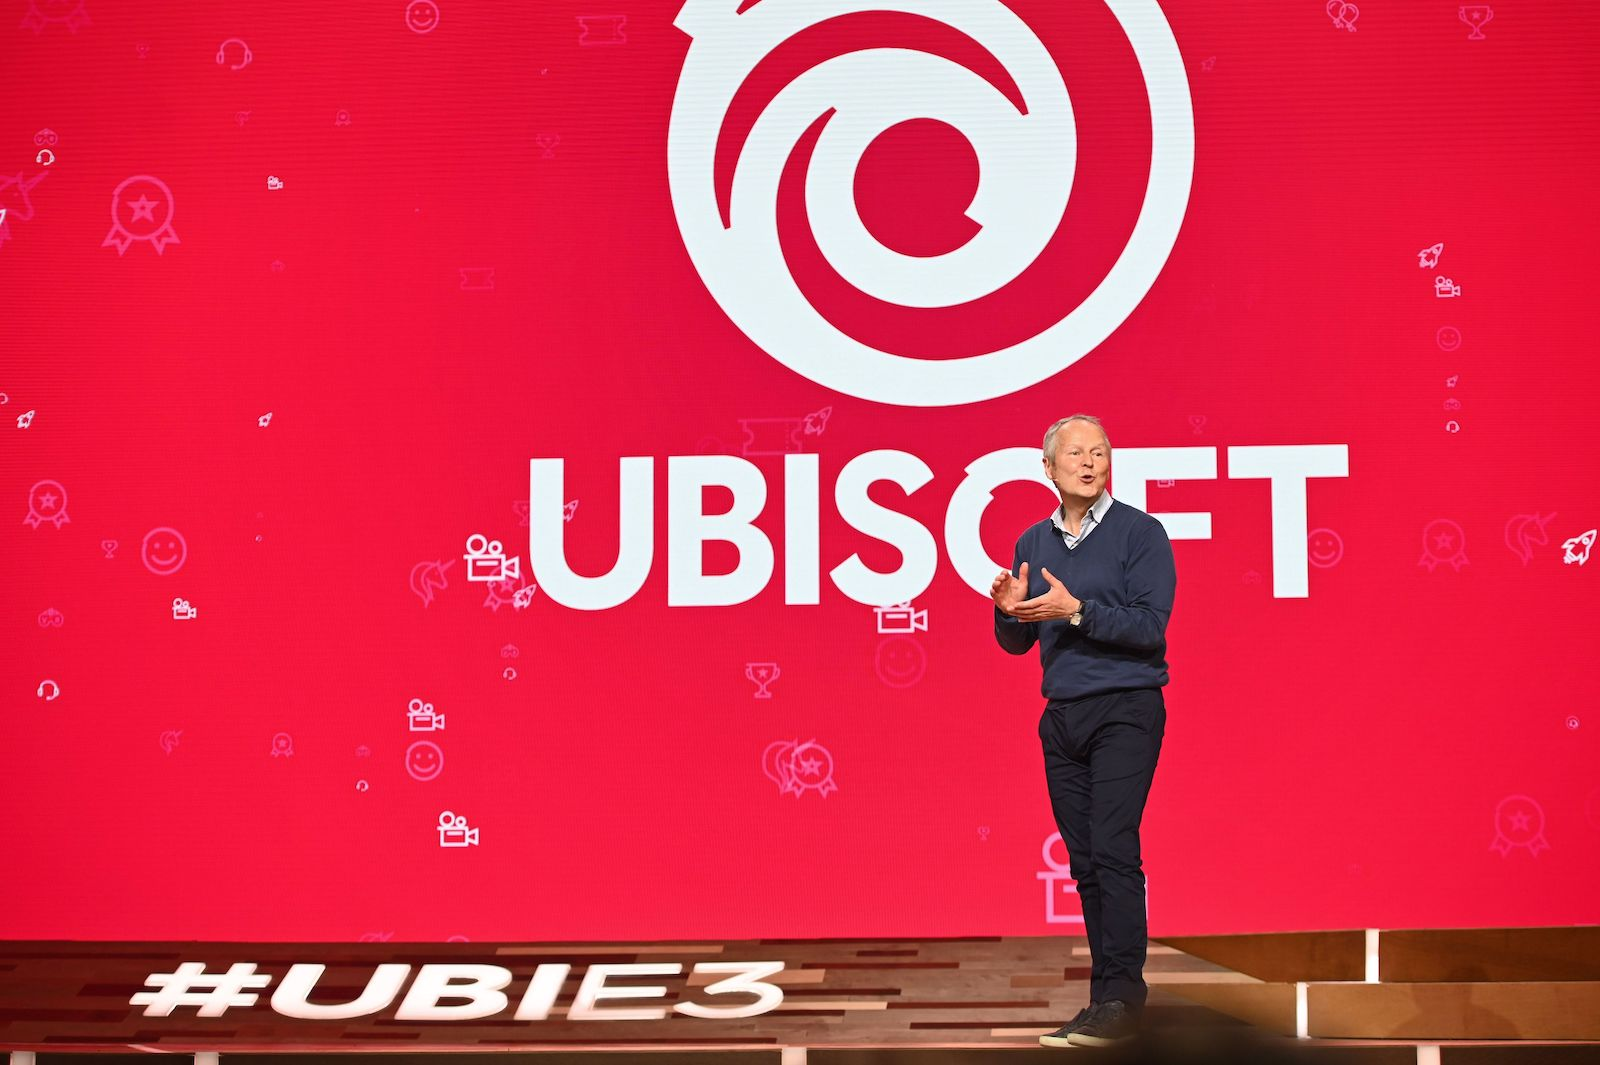 Ubisoft CEO Yves Guillemot speaks on stage at the Ubisoft E3 press conference in Los Angeles, June 10, 2019. - The E3 Electronic Entertainment Expo takes place at the Los Angeles Convention Center June 11-13. (Photo by Robyn Beck / AFP) (Photo by ROBYN BECK/AFP via Getty Images)